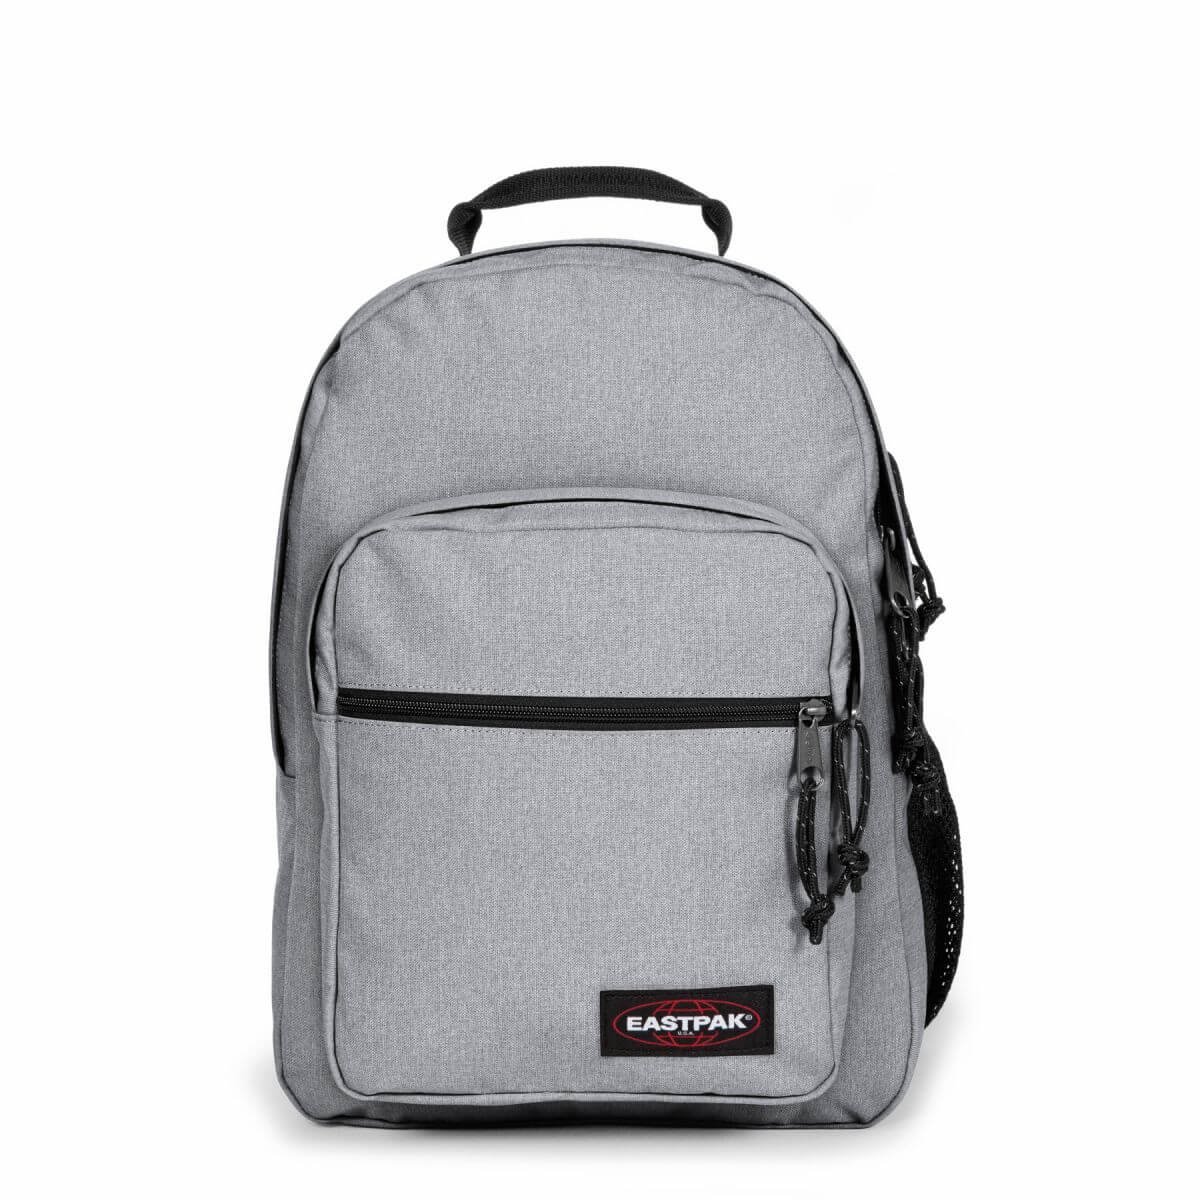 Eastpak Morius Sunday Grey